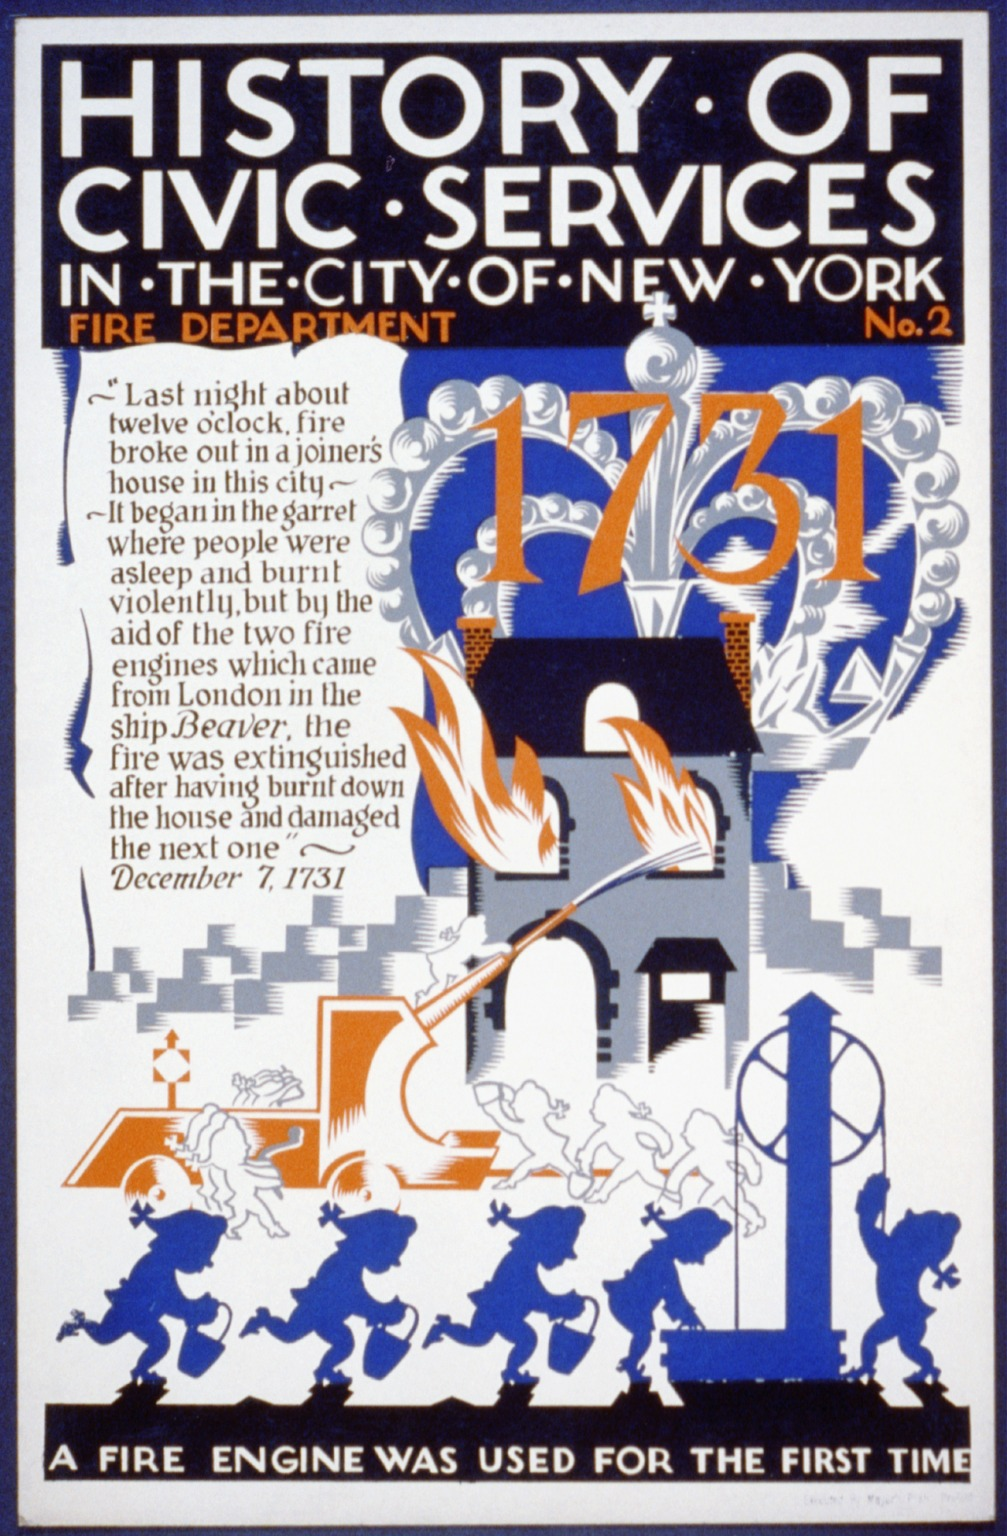 File:History of civic services in the city of New York